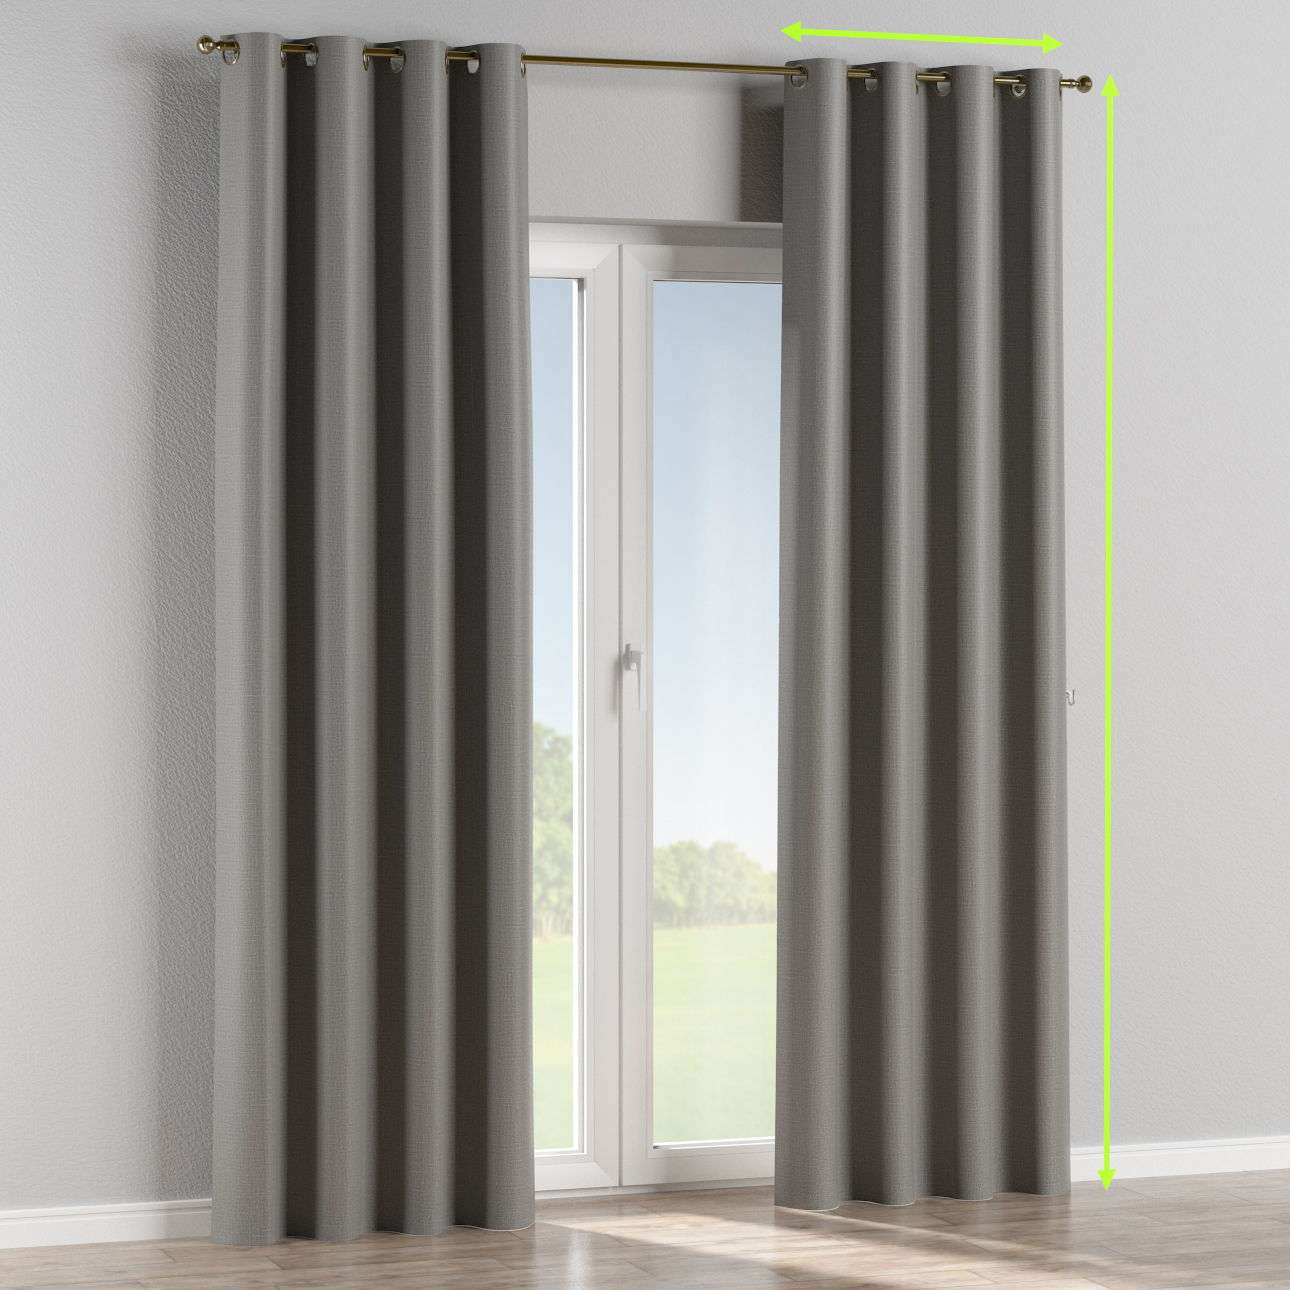 Eyelet curtain in collection Blackout, fabric: 269-63